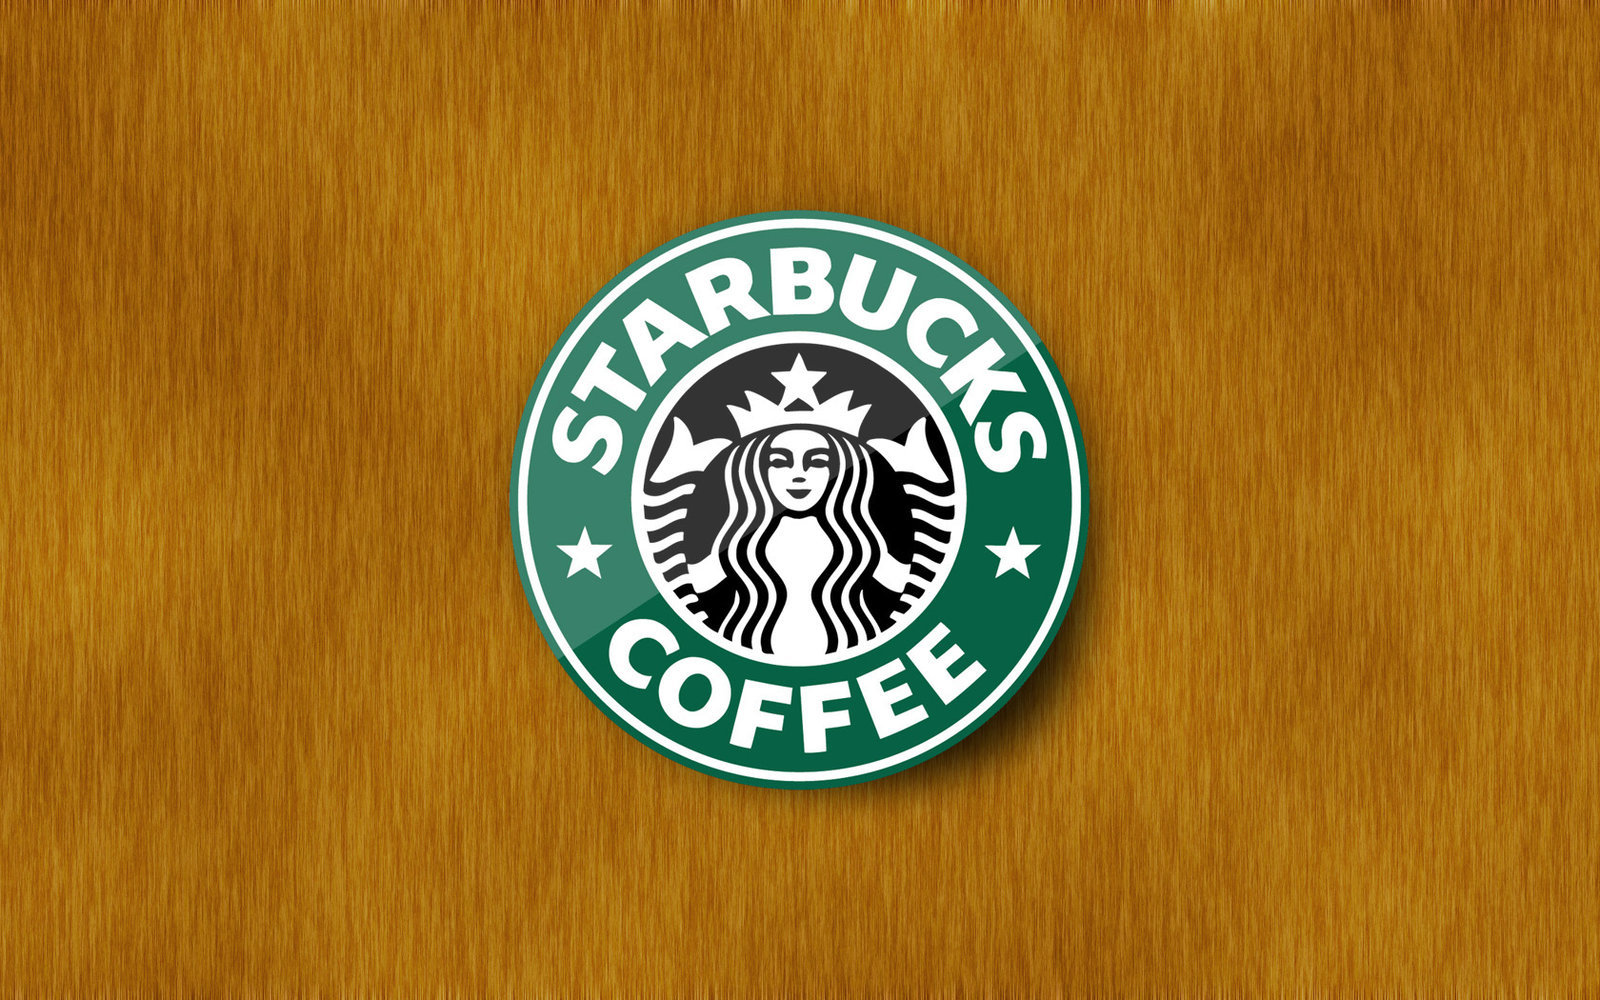 http://onlyhdwallpapers.com/wallpaper/starbucks_logos_desktop_1600x1000_wallpaper-78906.jpg